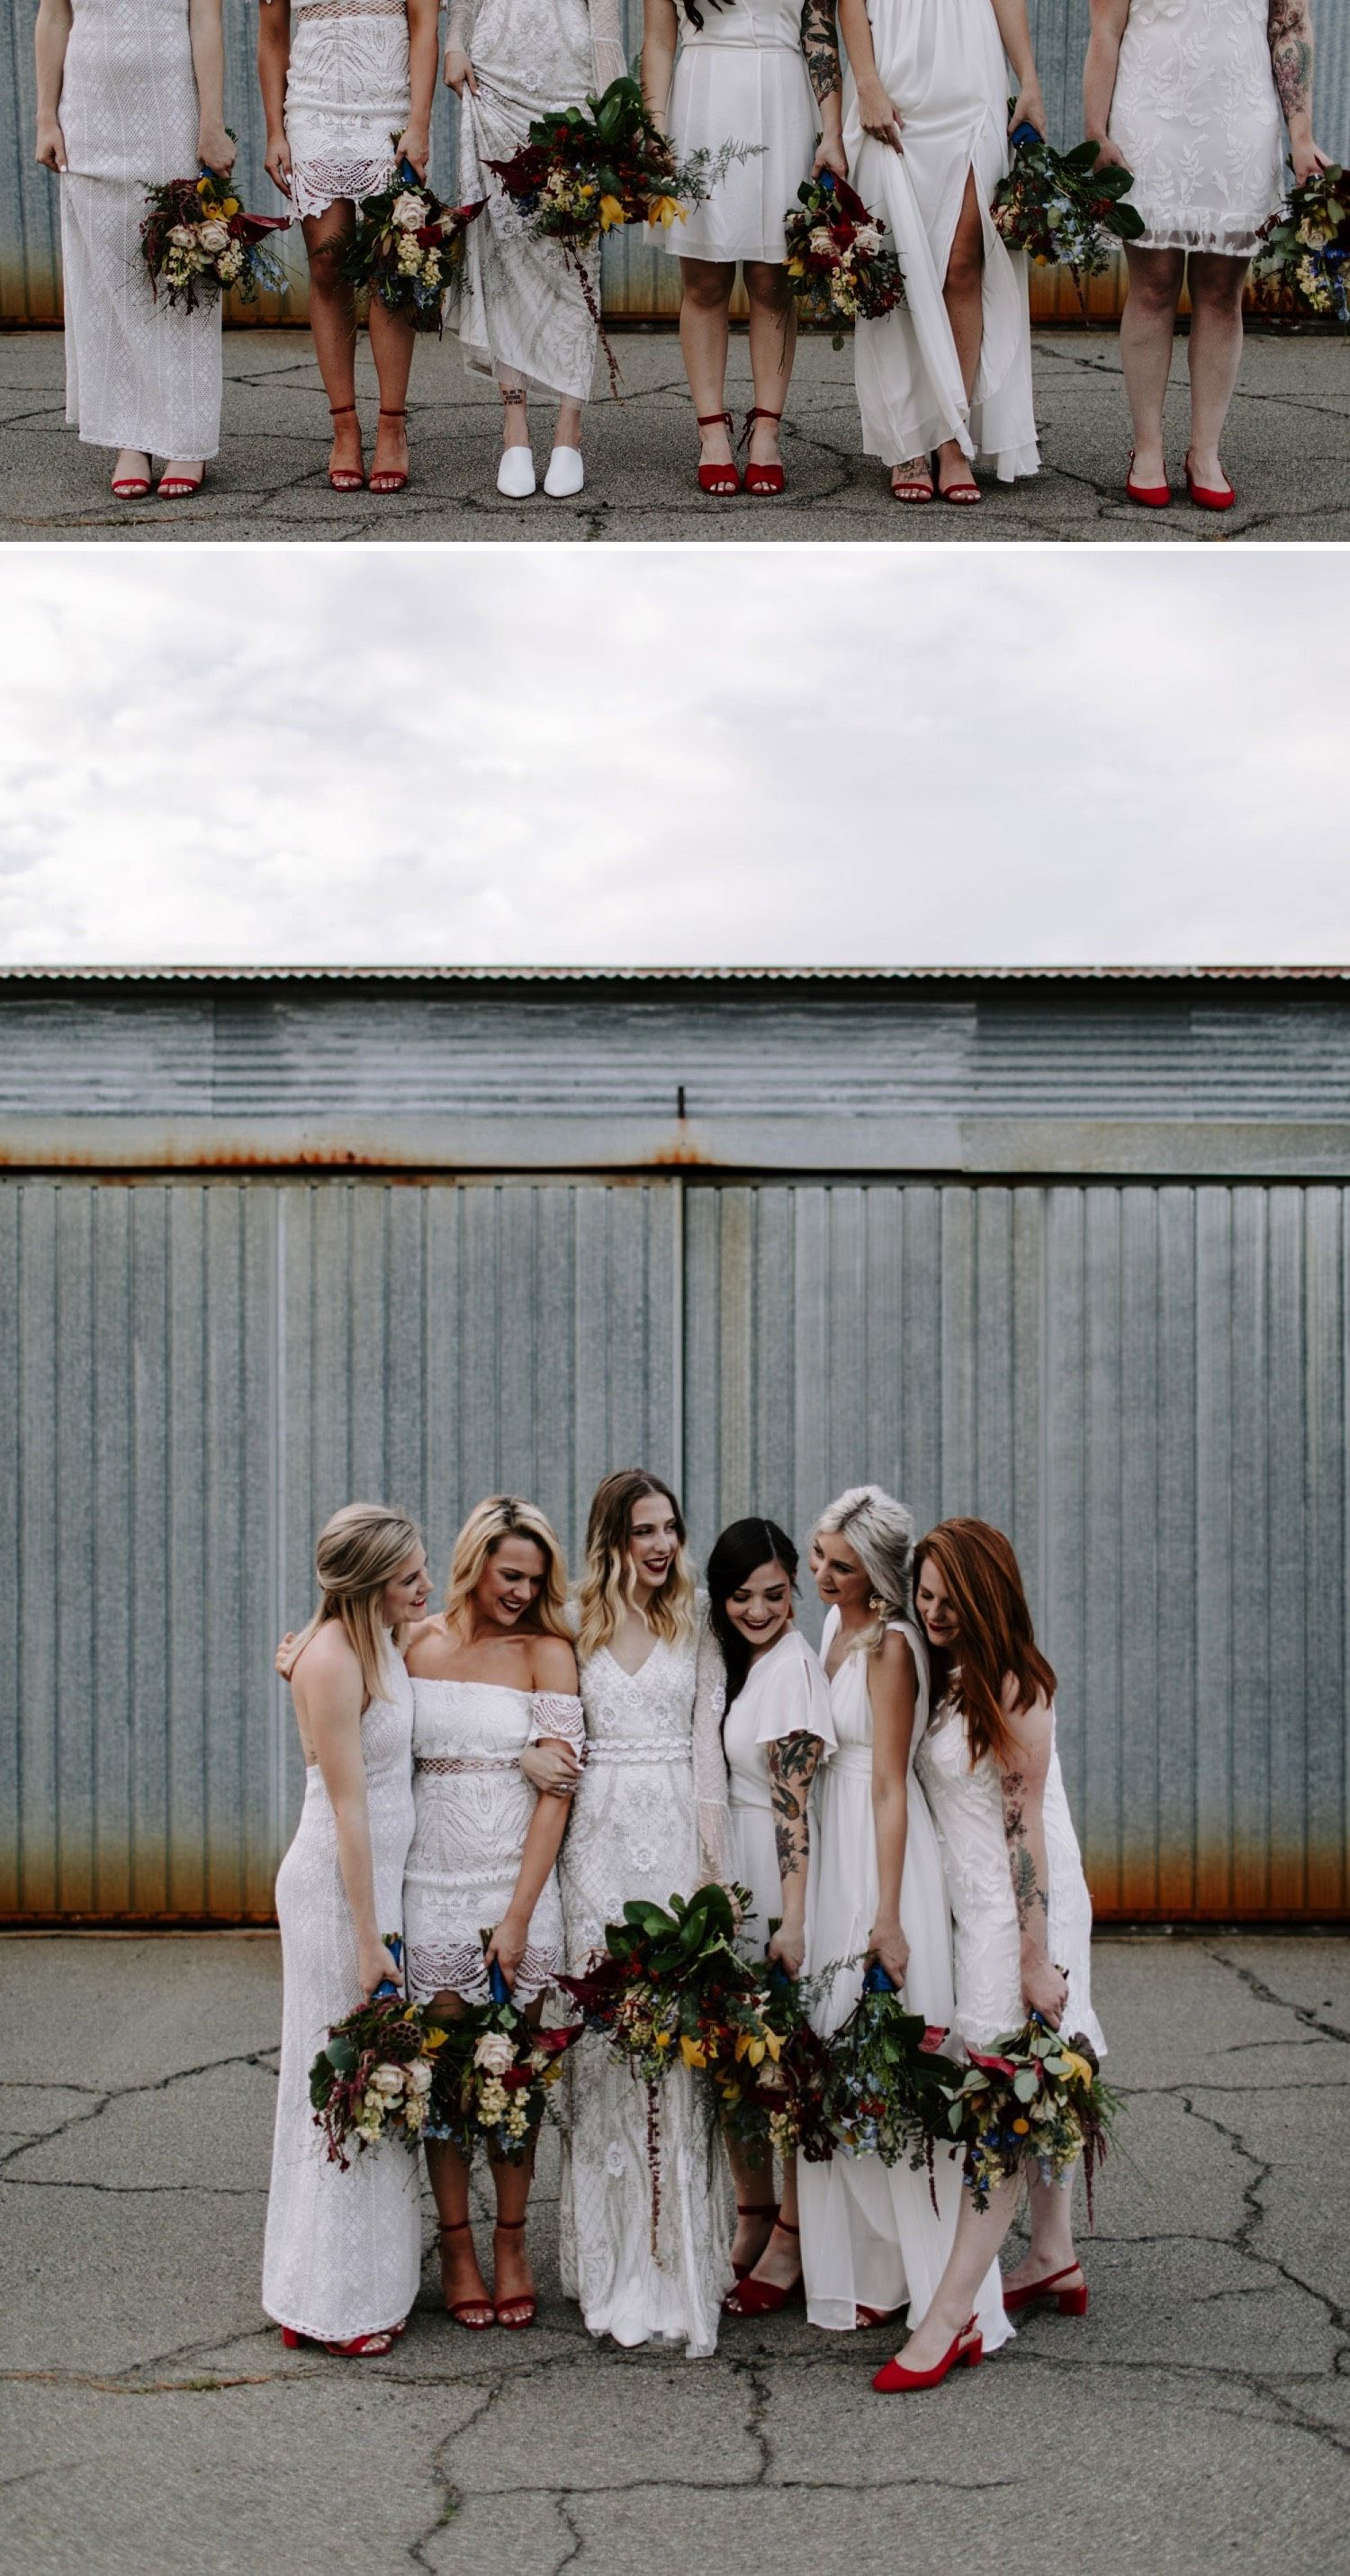 All white bridesmaids dresses with red shoes and colorful bouquets